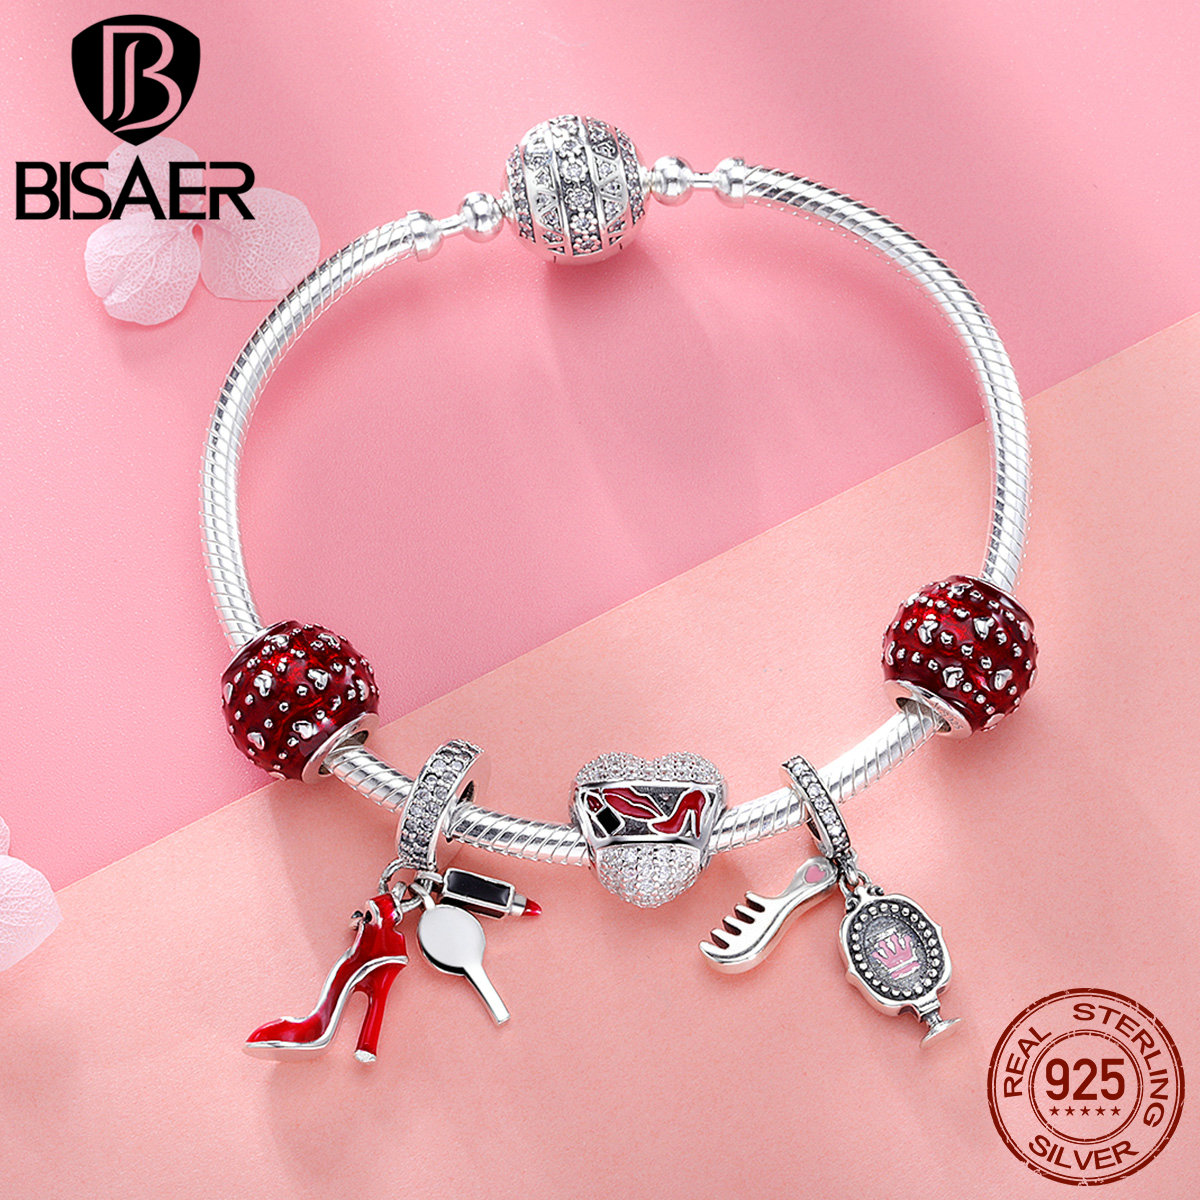 925 Sterling Silver Bracelets High Heels Shoes Heart Red Enamel Bracelets & Bangles for Women Authentic Silver Jewelry ECB802925 Sterling Silver Bracelets High Heels Shoes Heart Red Enamel Bracelets & Bangles for Women Authentic Silver Jewelry ECB802